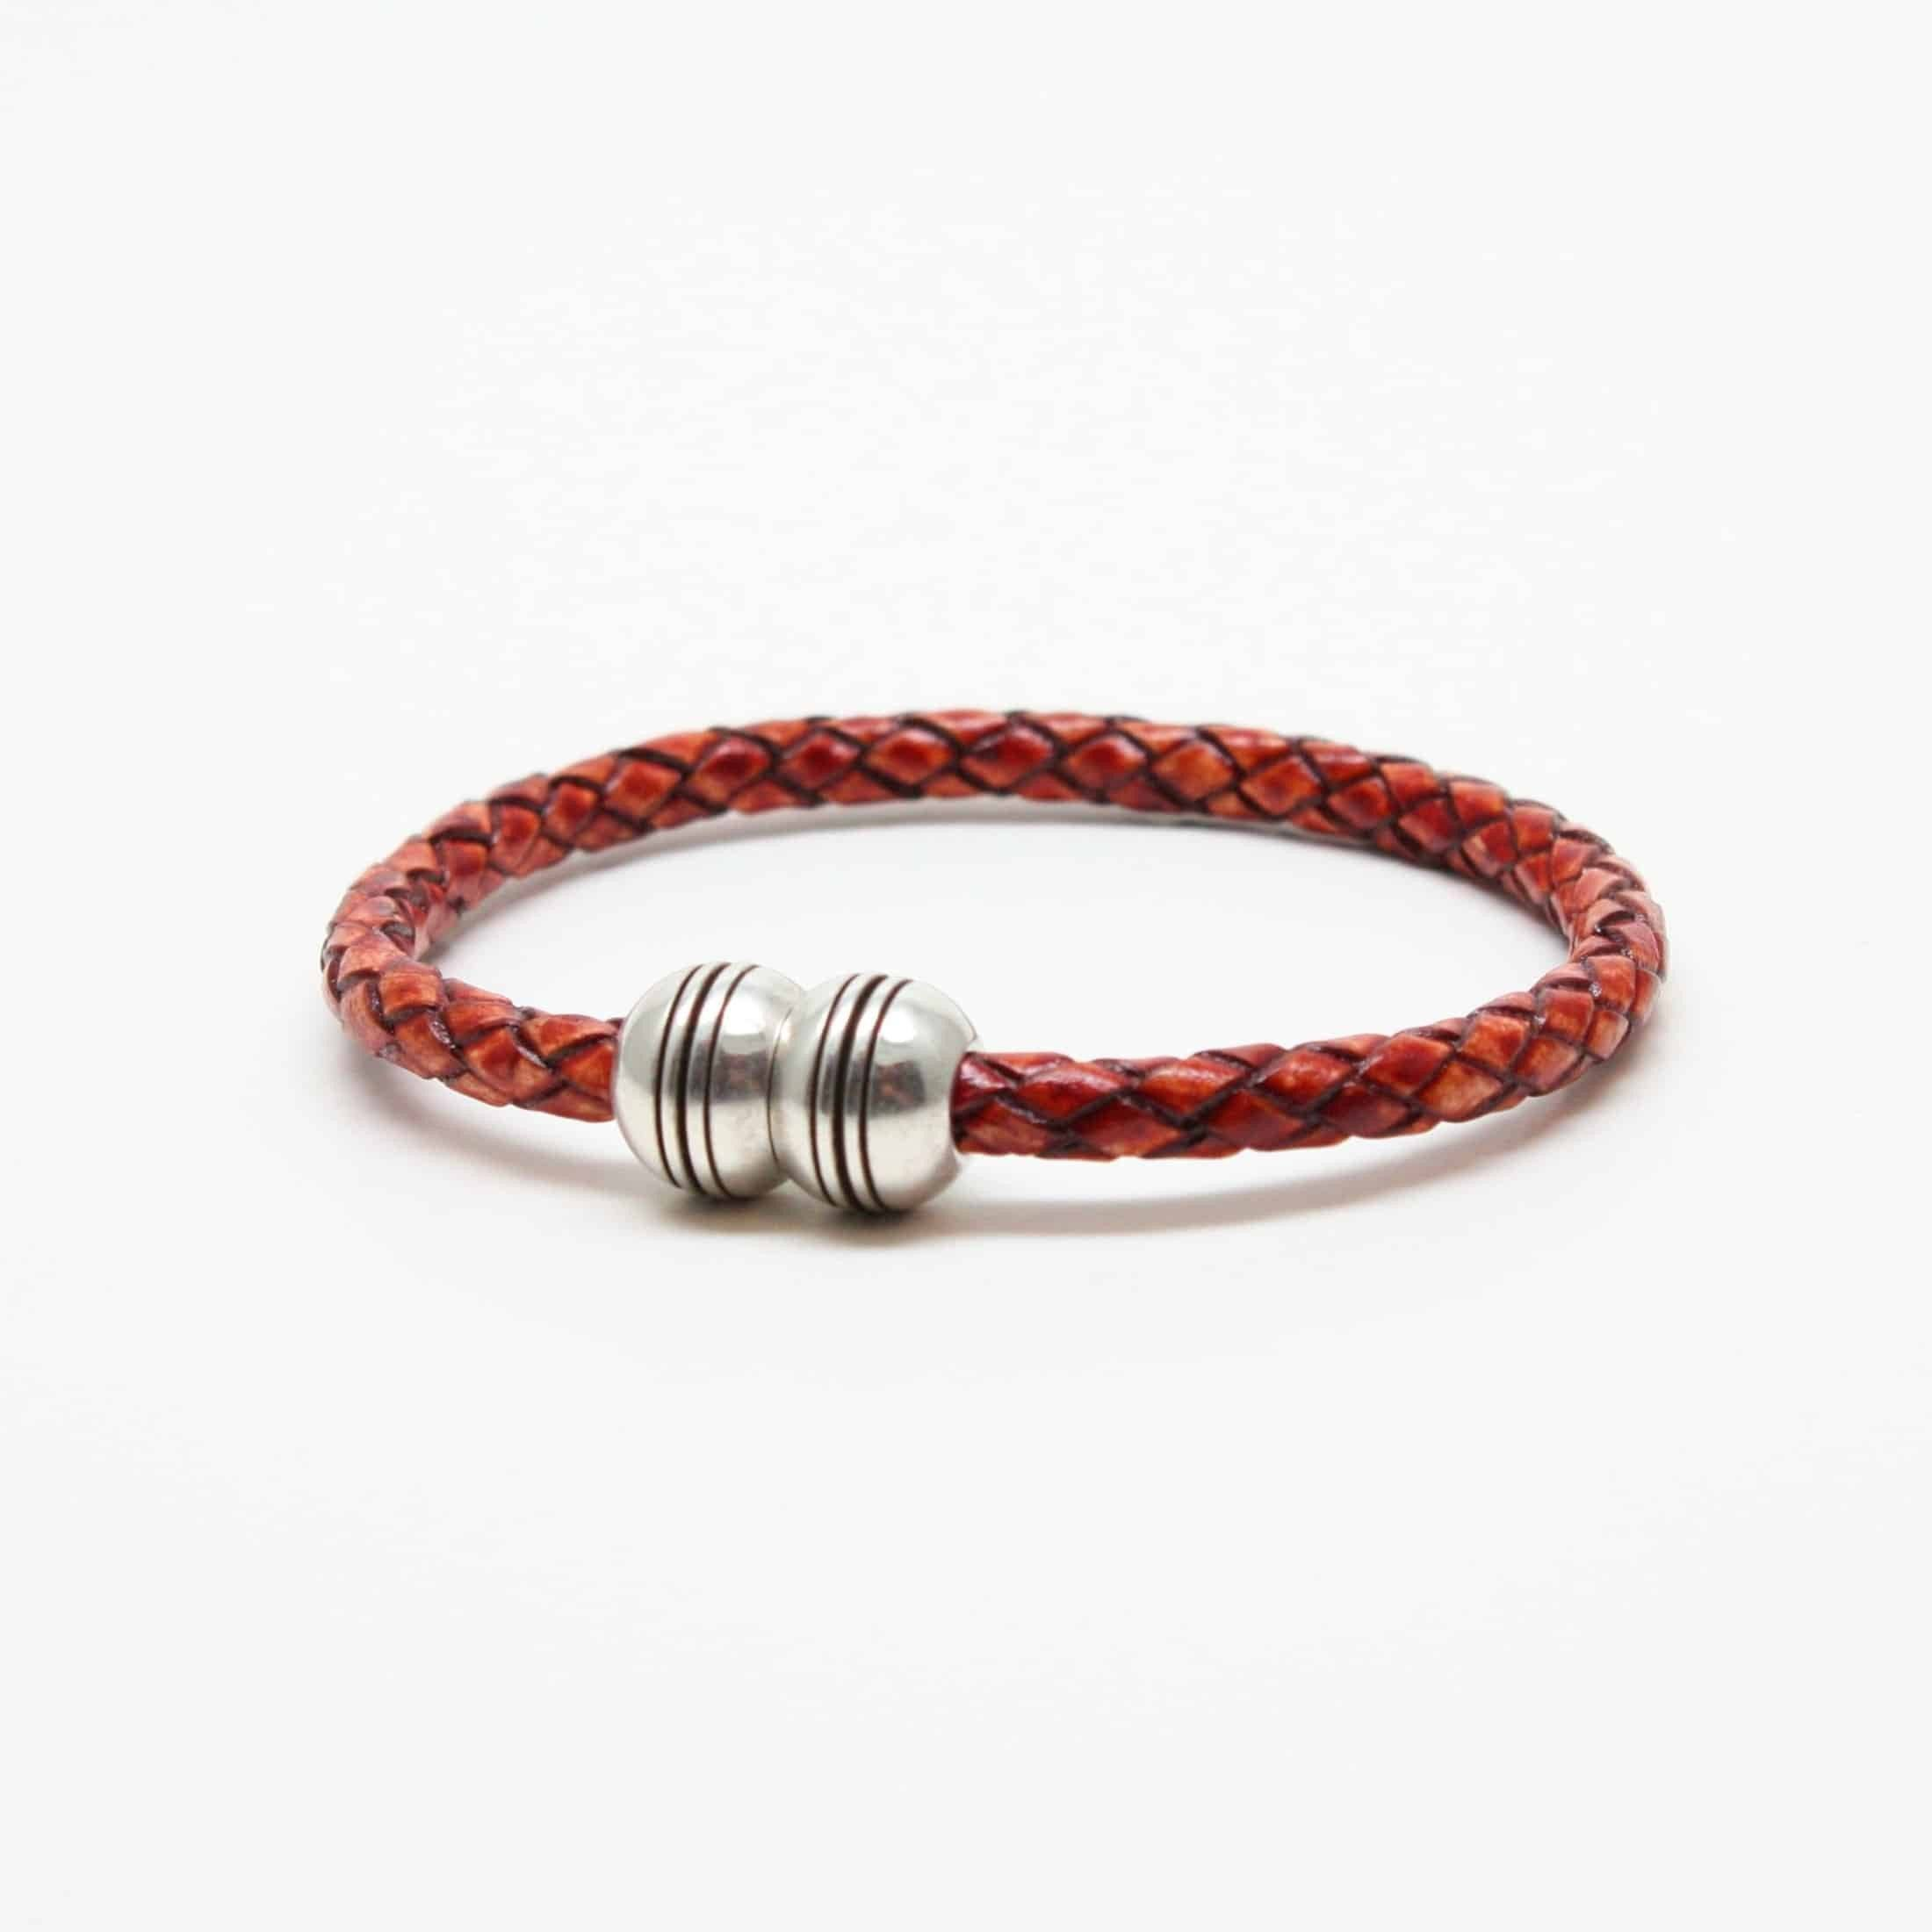 Braided Leather Hemisphere Bracelet - Whiskey,BRACELET,Gent Row, | GentRow.com